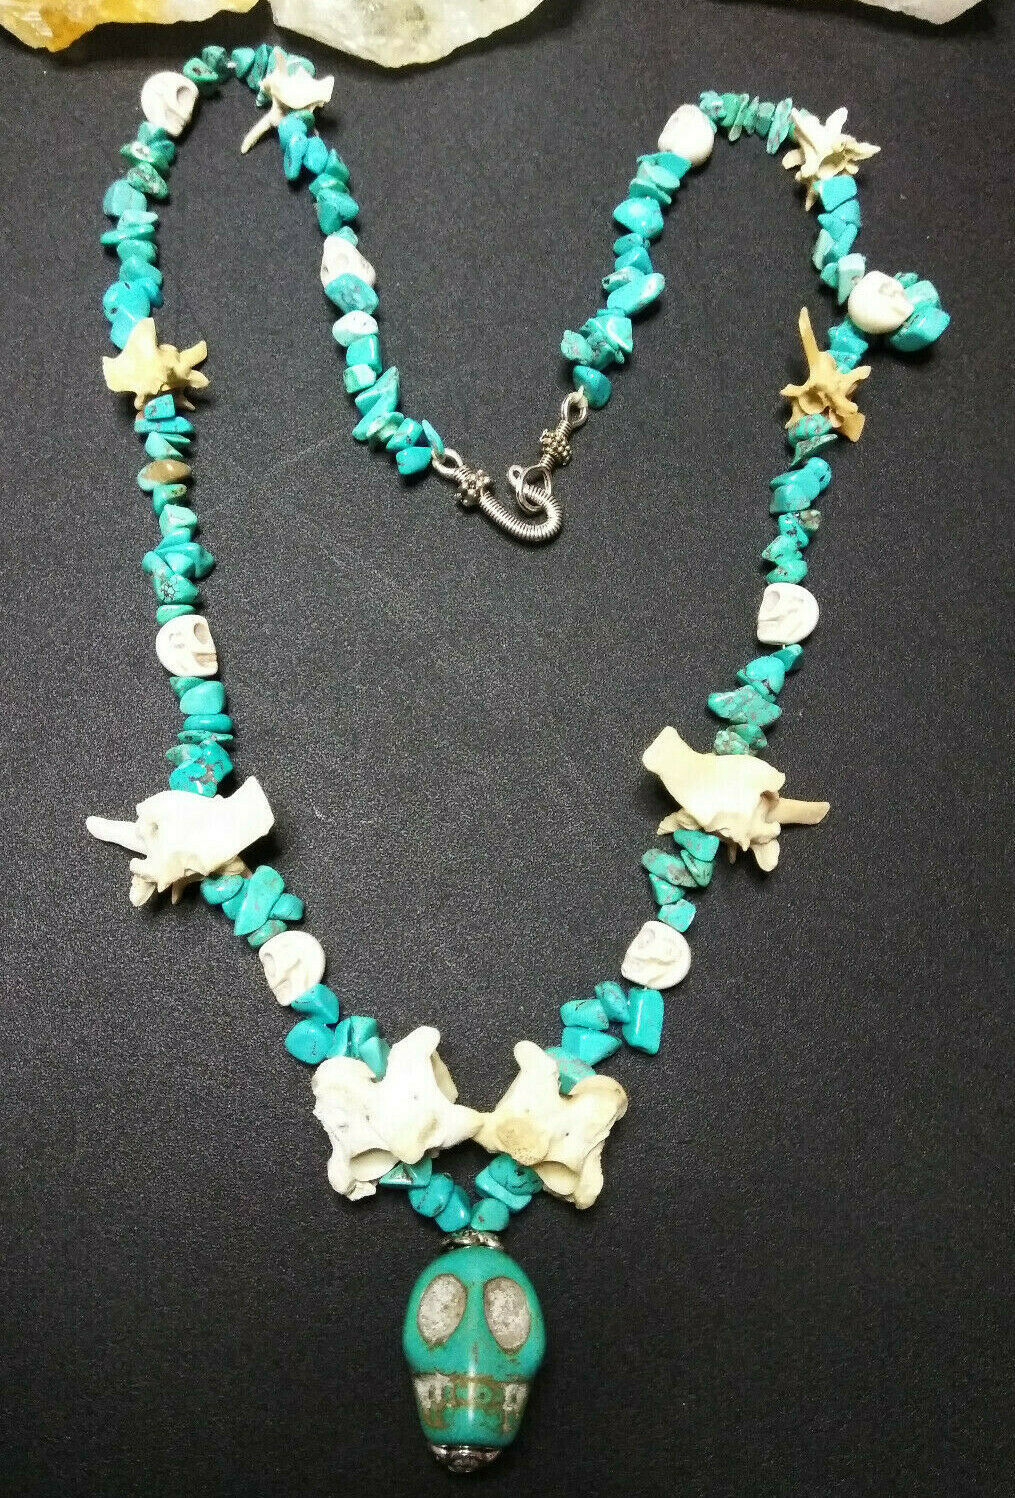 Primary image for Necklace with Howlite Skulls Rattle Snake Bones Turquoise Wicca Hodoo Goth